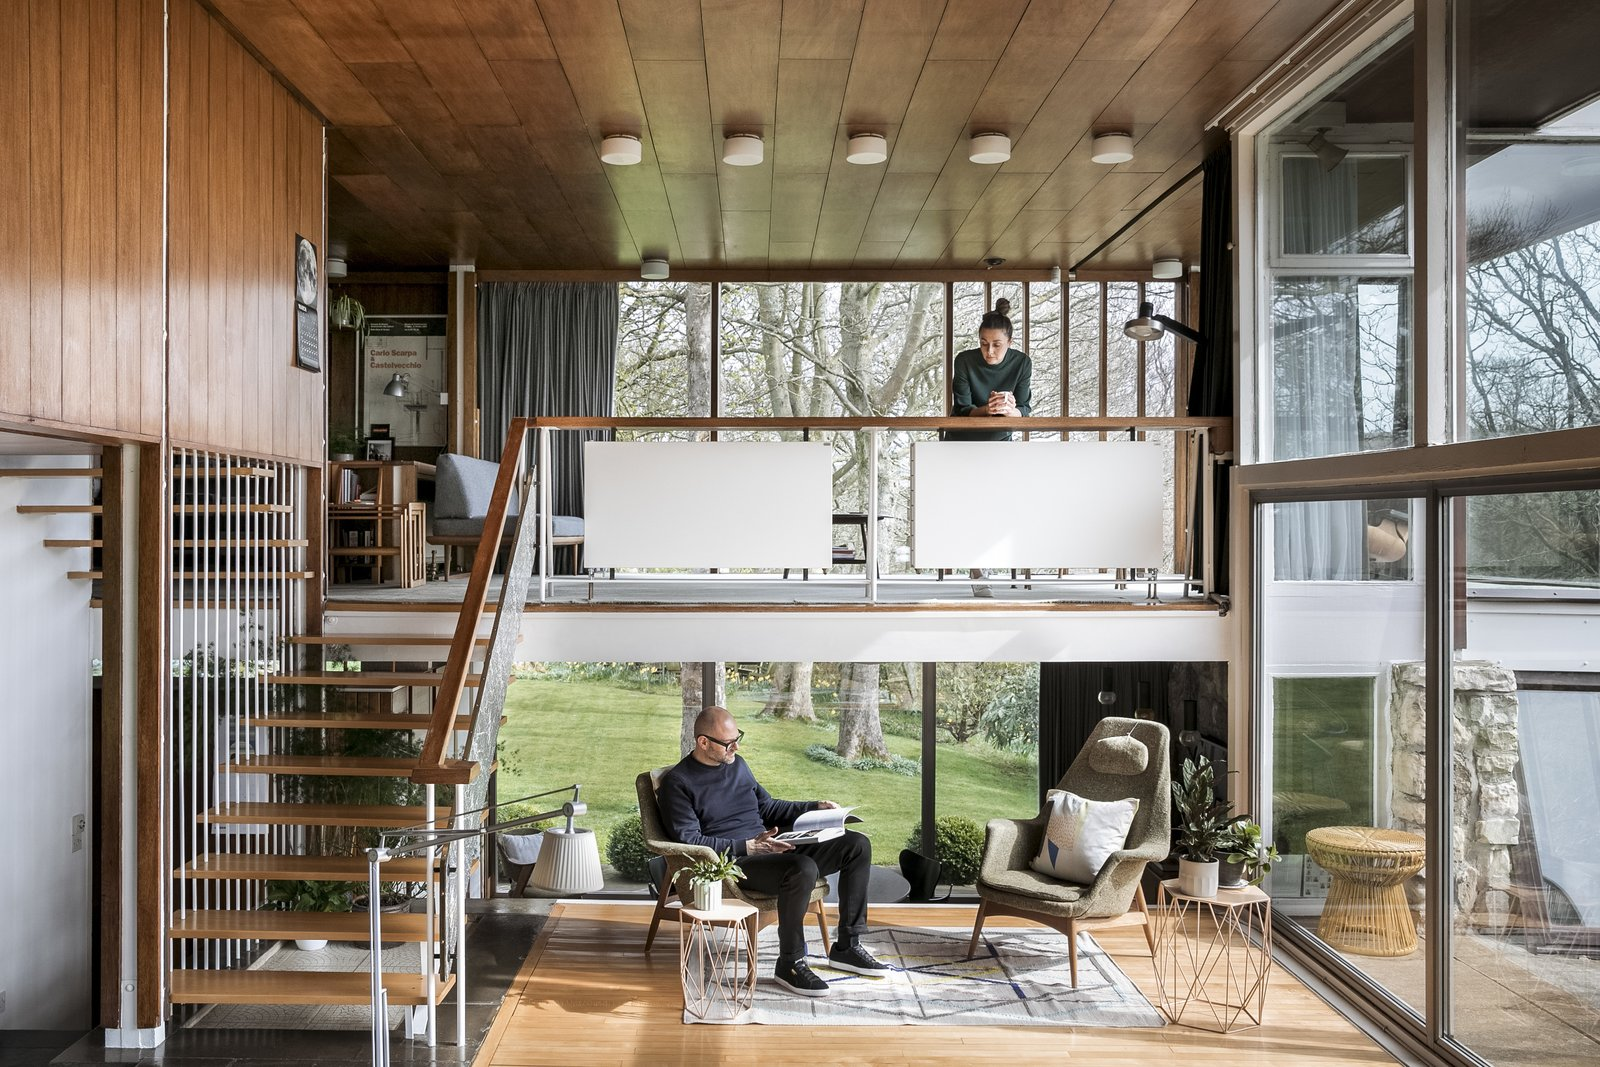 The couple purchased the living room's H.W. Klein chairs with the house. Another existing piece was the mezzanine's daybed, designed by Peter Hvidt and Orlando Mølgaard Nielsen. An original floating staircase leads to the mezzanine and then up to the second floor. The open, straight-forward spaces speak to one of Christian's guiding principles: